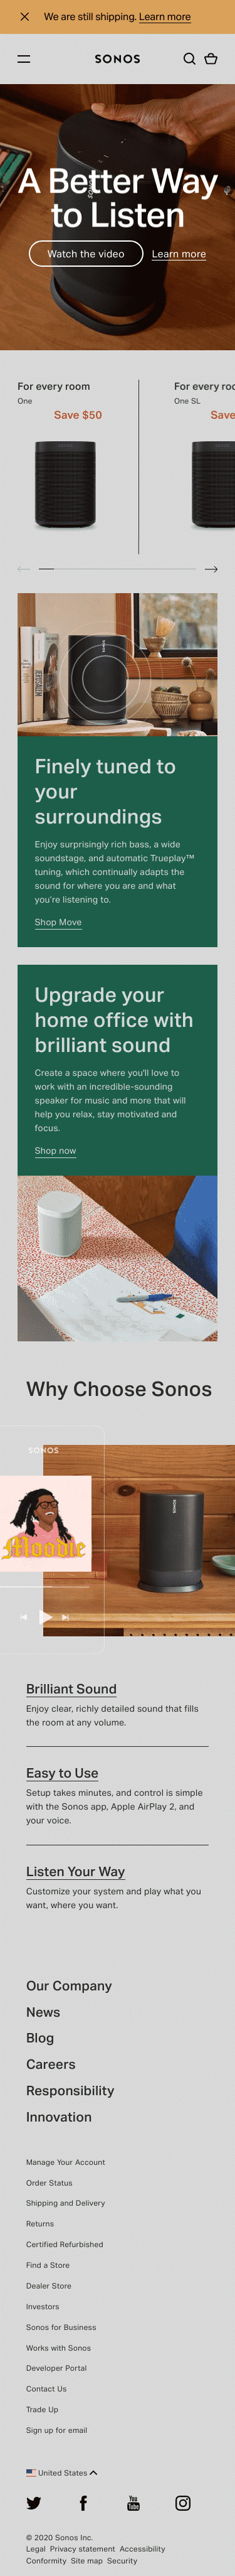 Sonos Audio Coupon